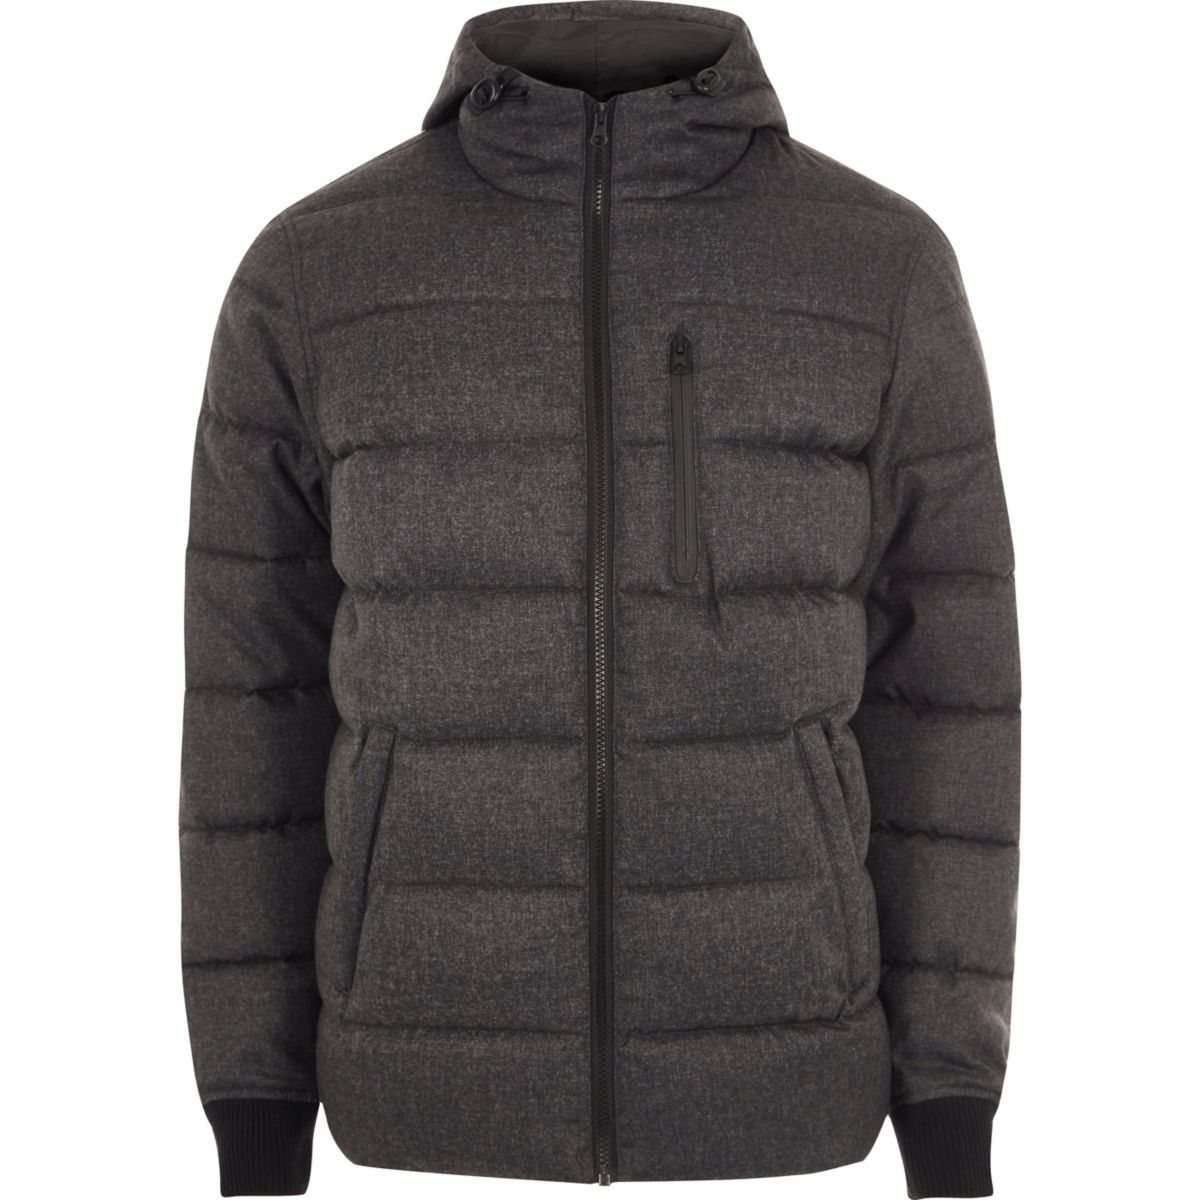 Grey hooded puffer jacket - Jackets - Coats & Jackets - men